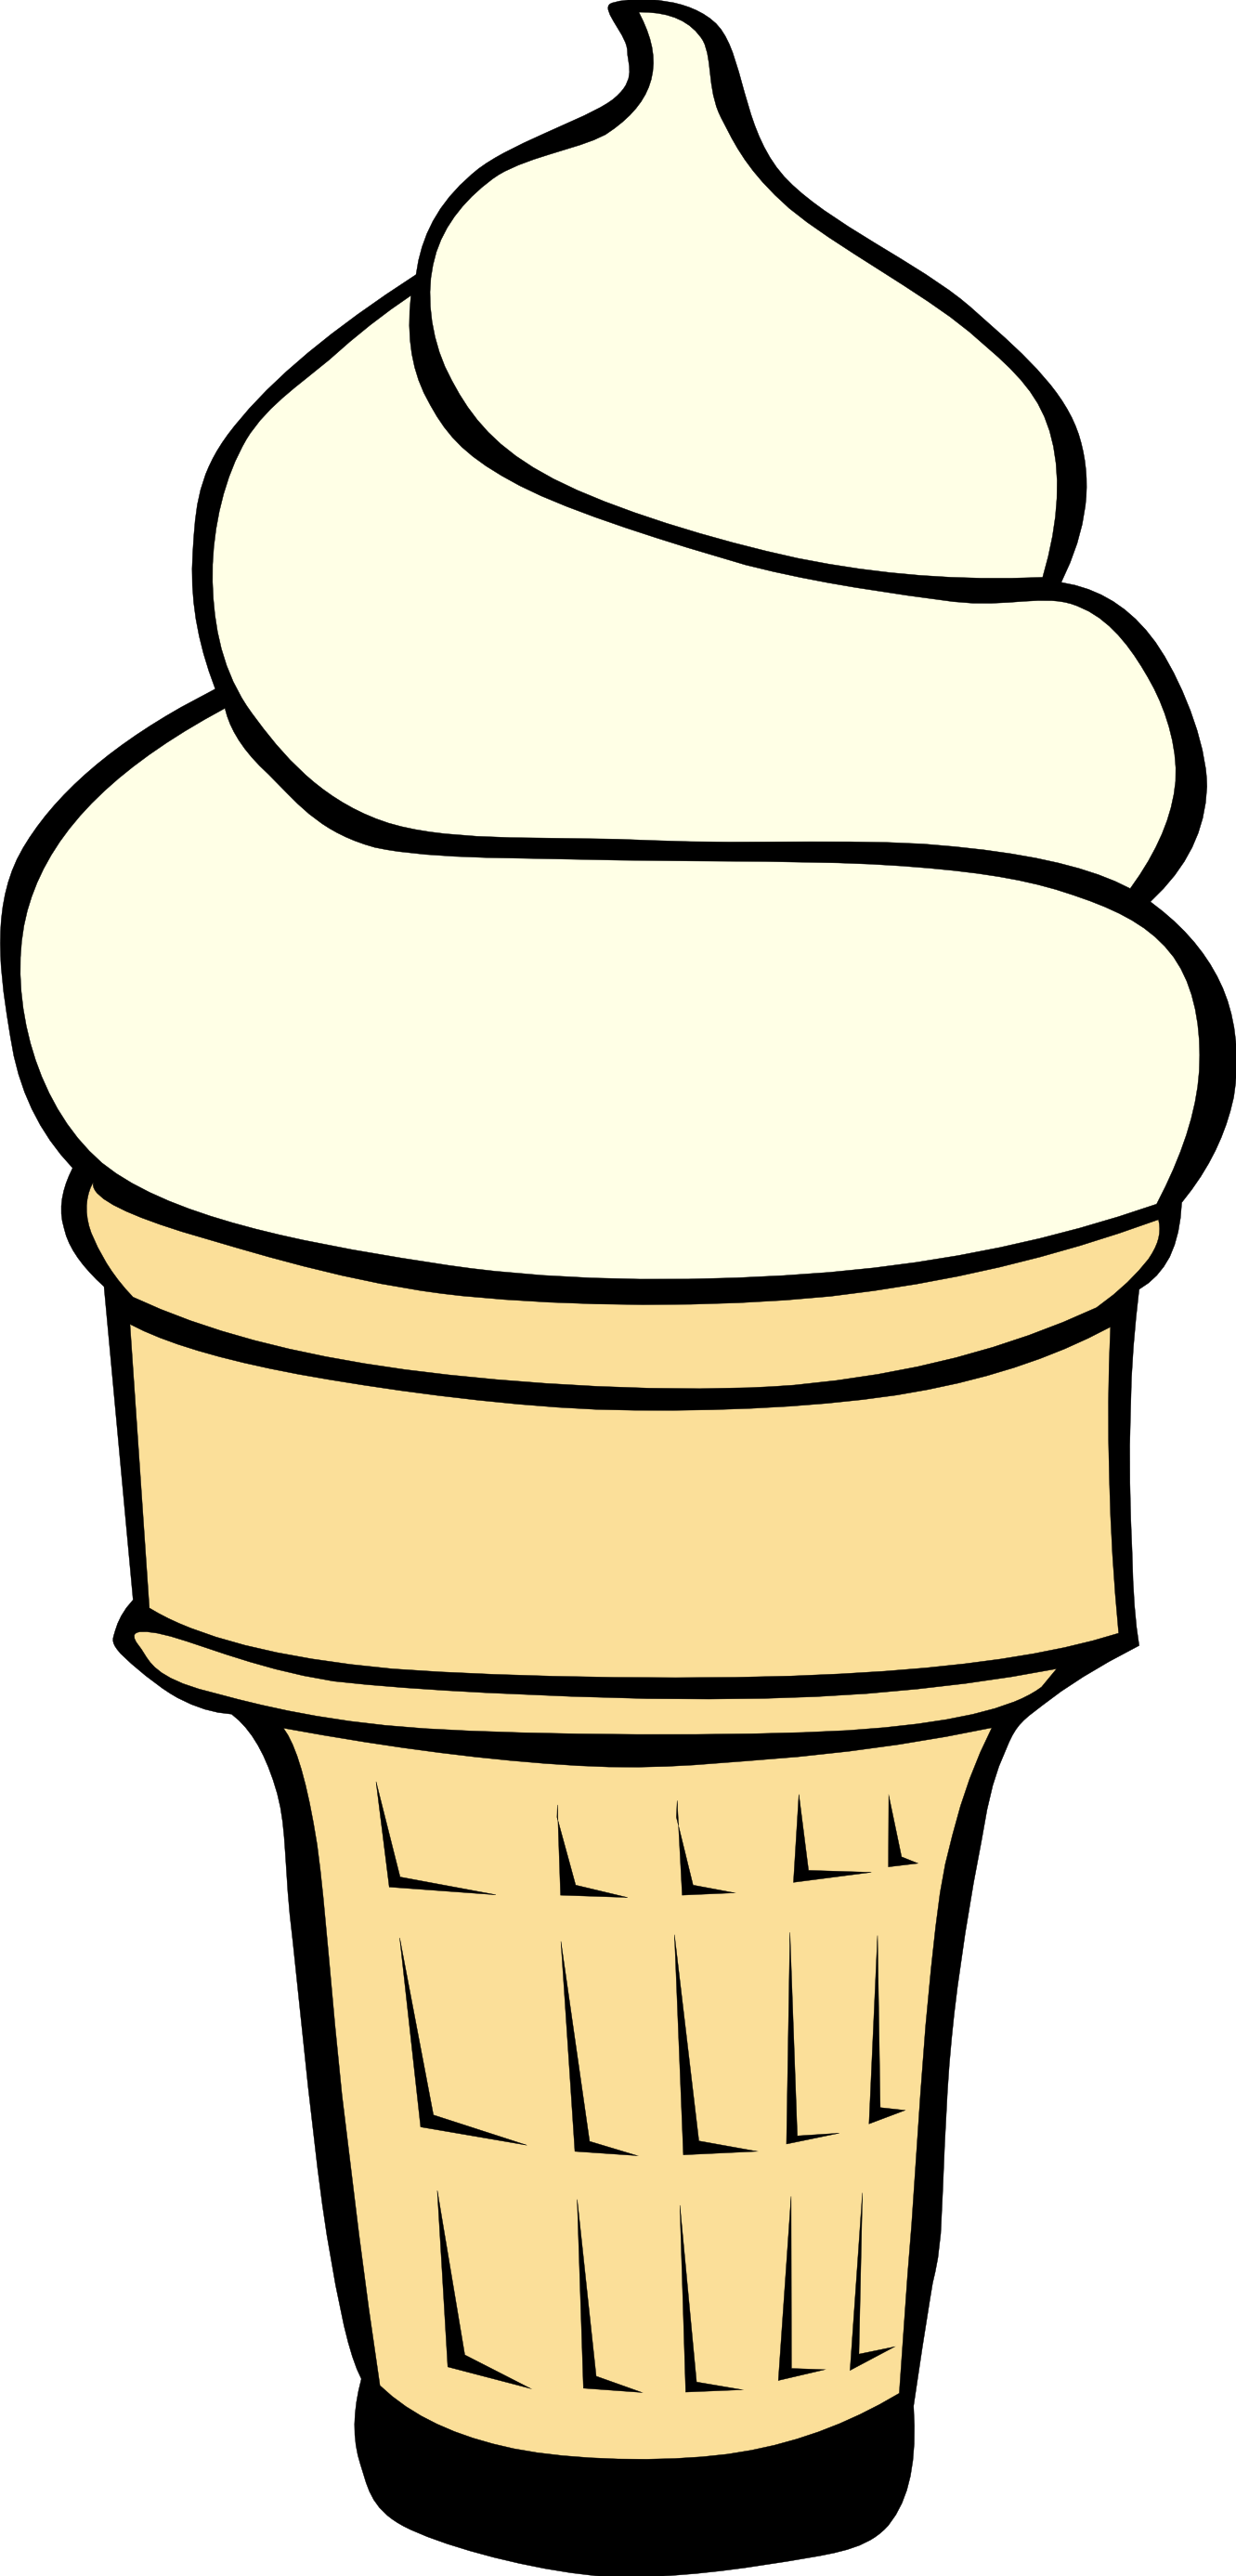 Ice Cream Cone Clipart | Clipart Panda - Free Clipart Images